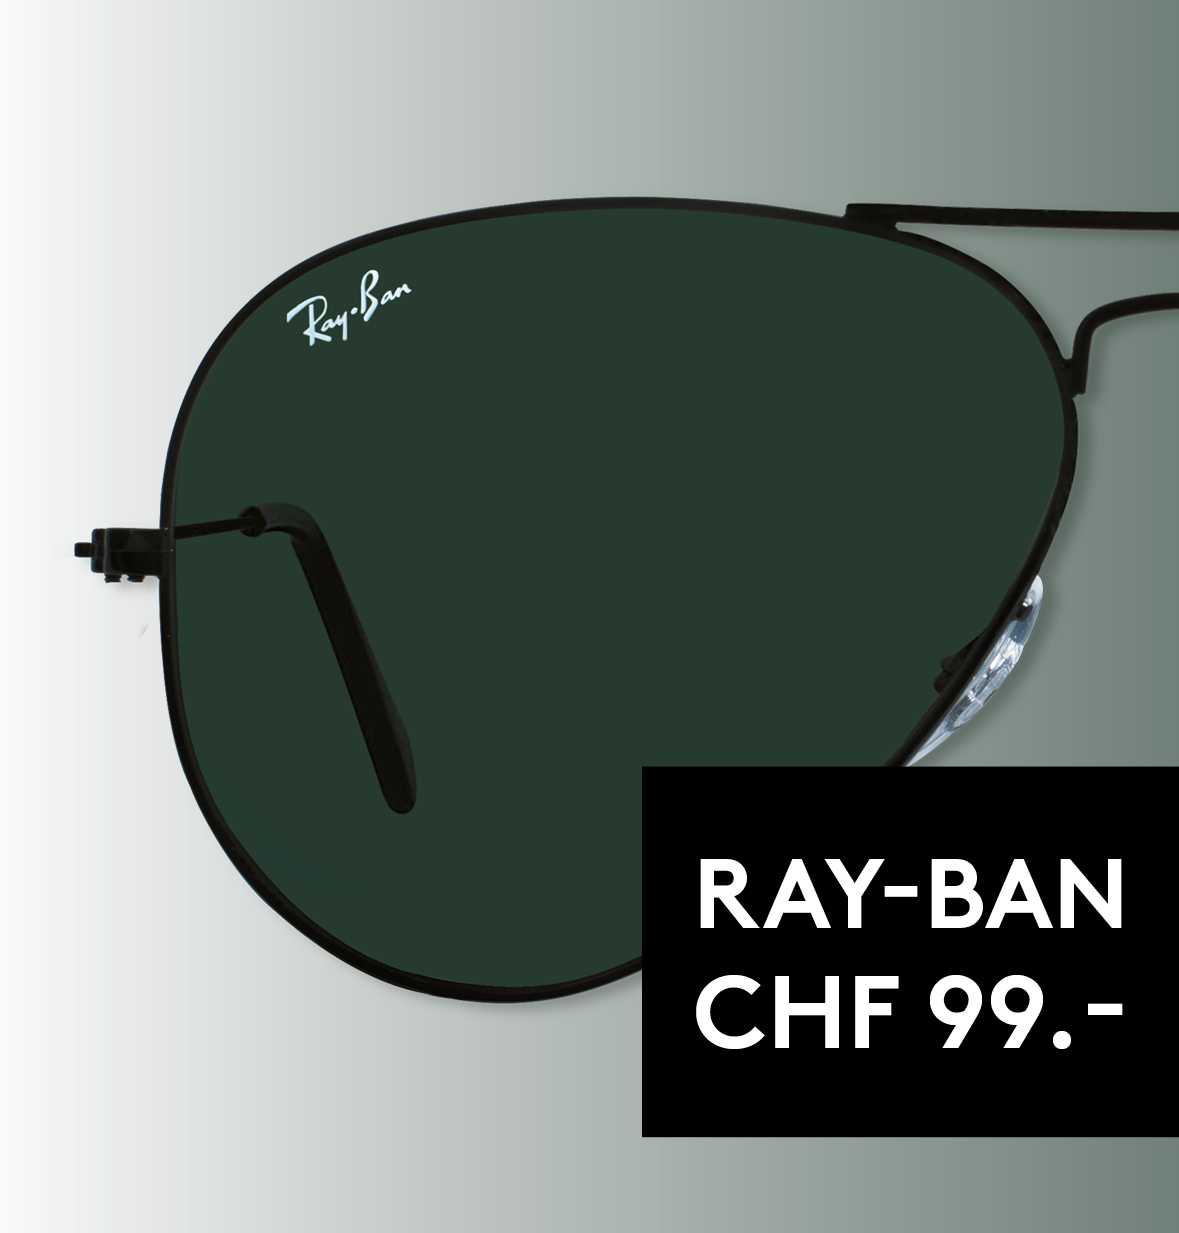 optic-2000-offre-ray-ban